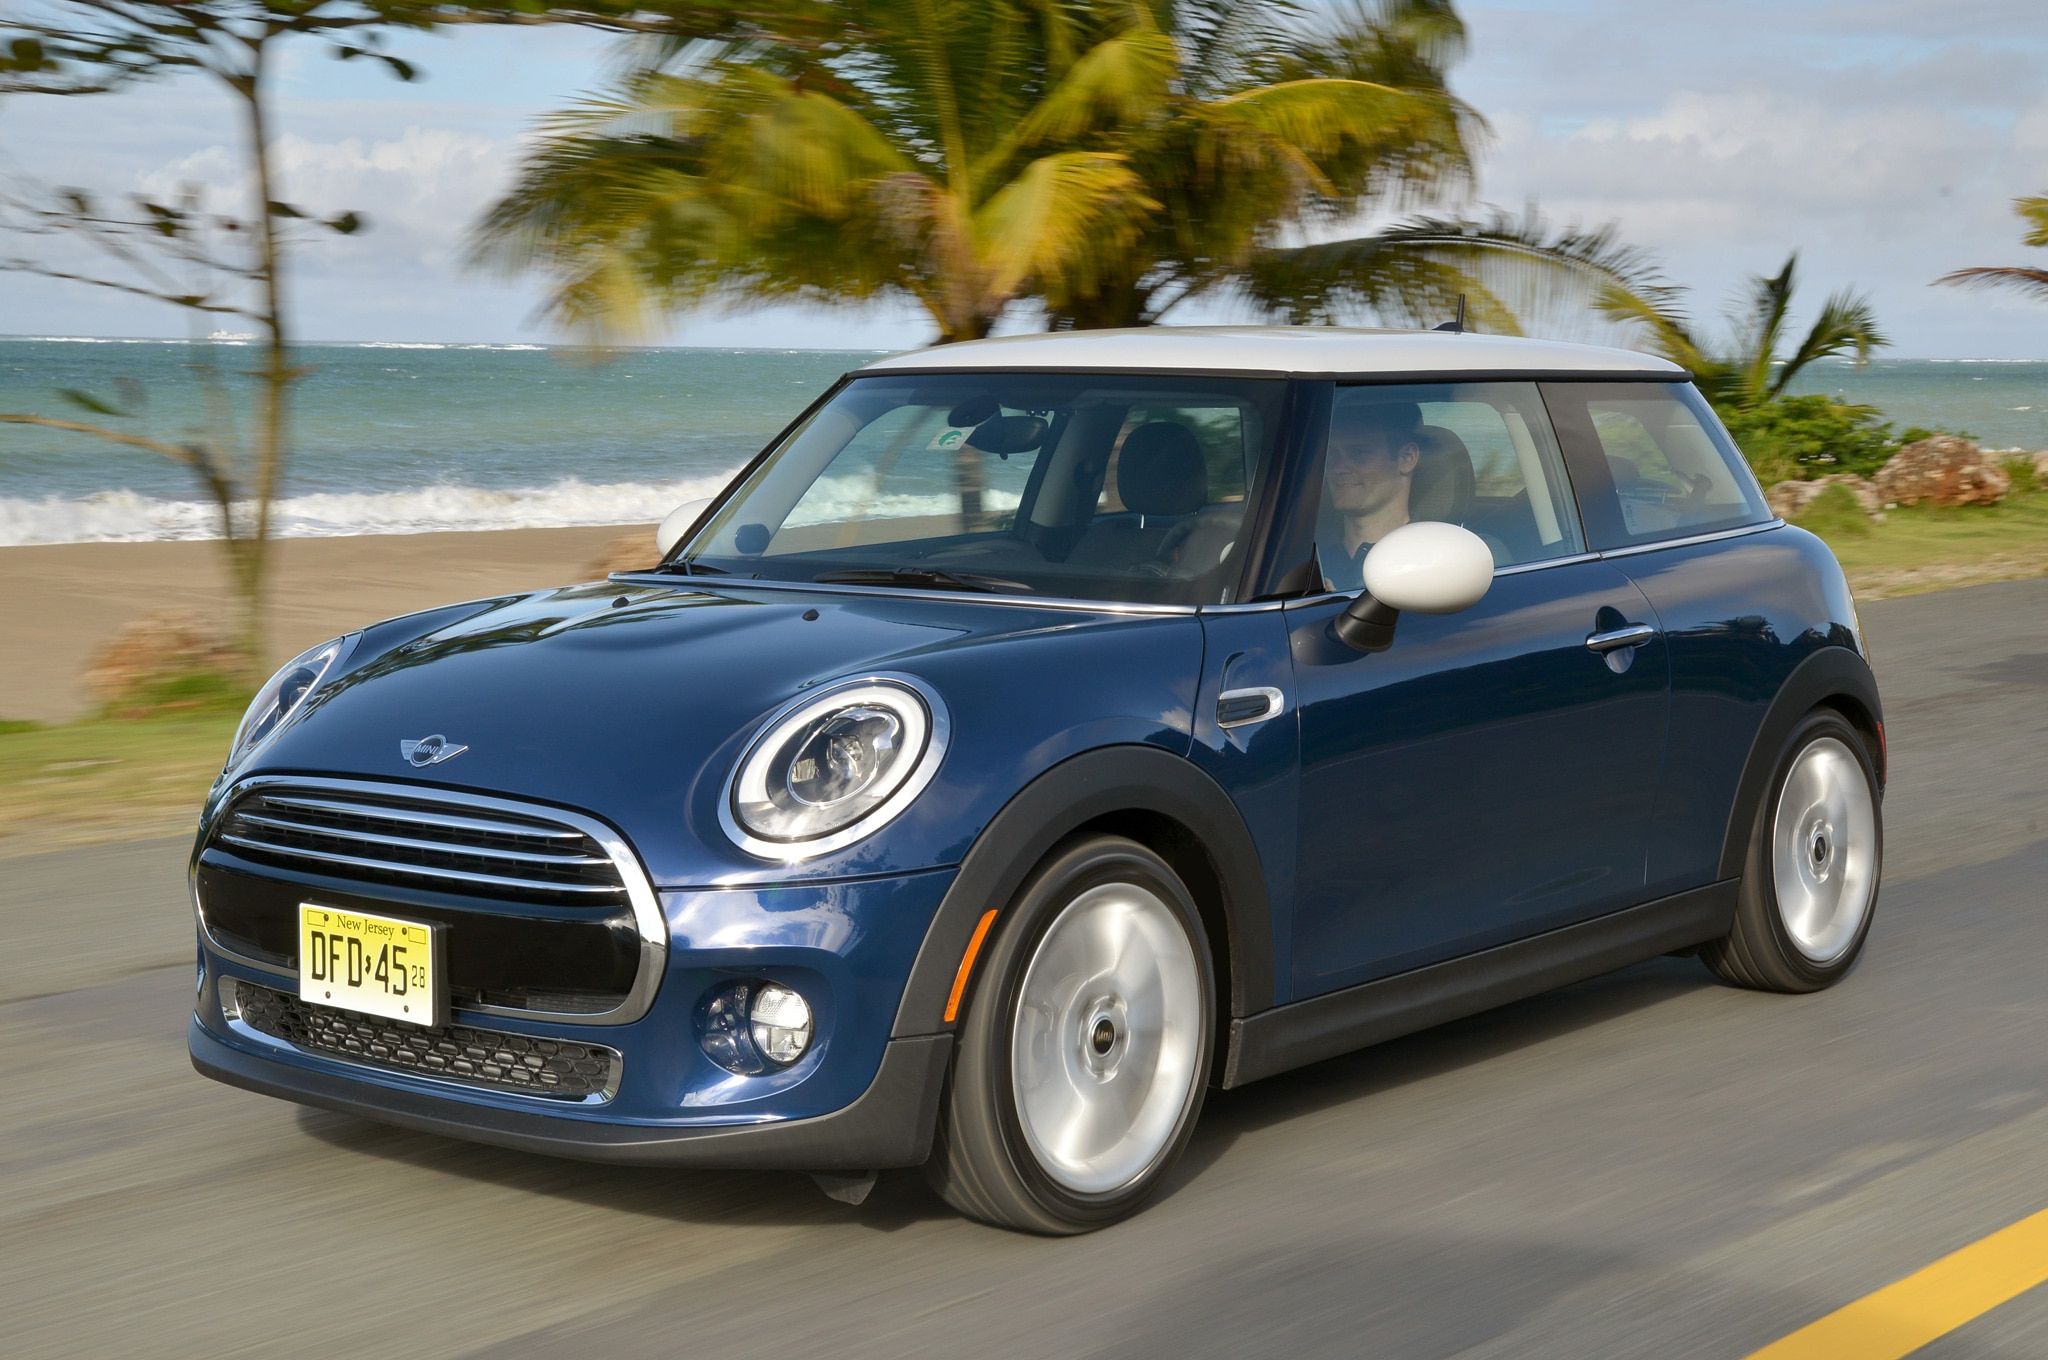 2014 Mini Cooper Front Three Quarters View In Motion On Coastline2